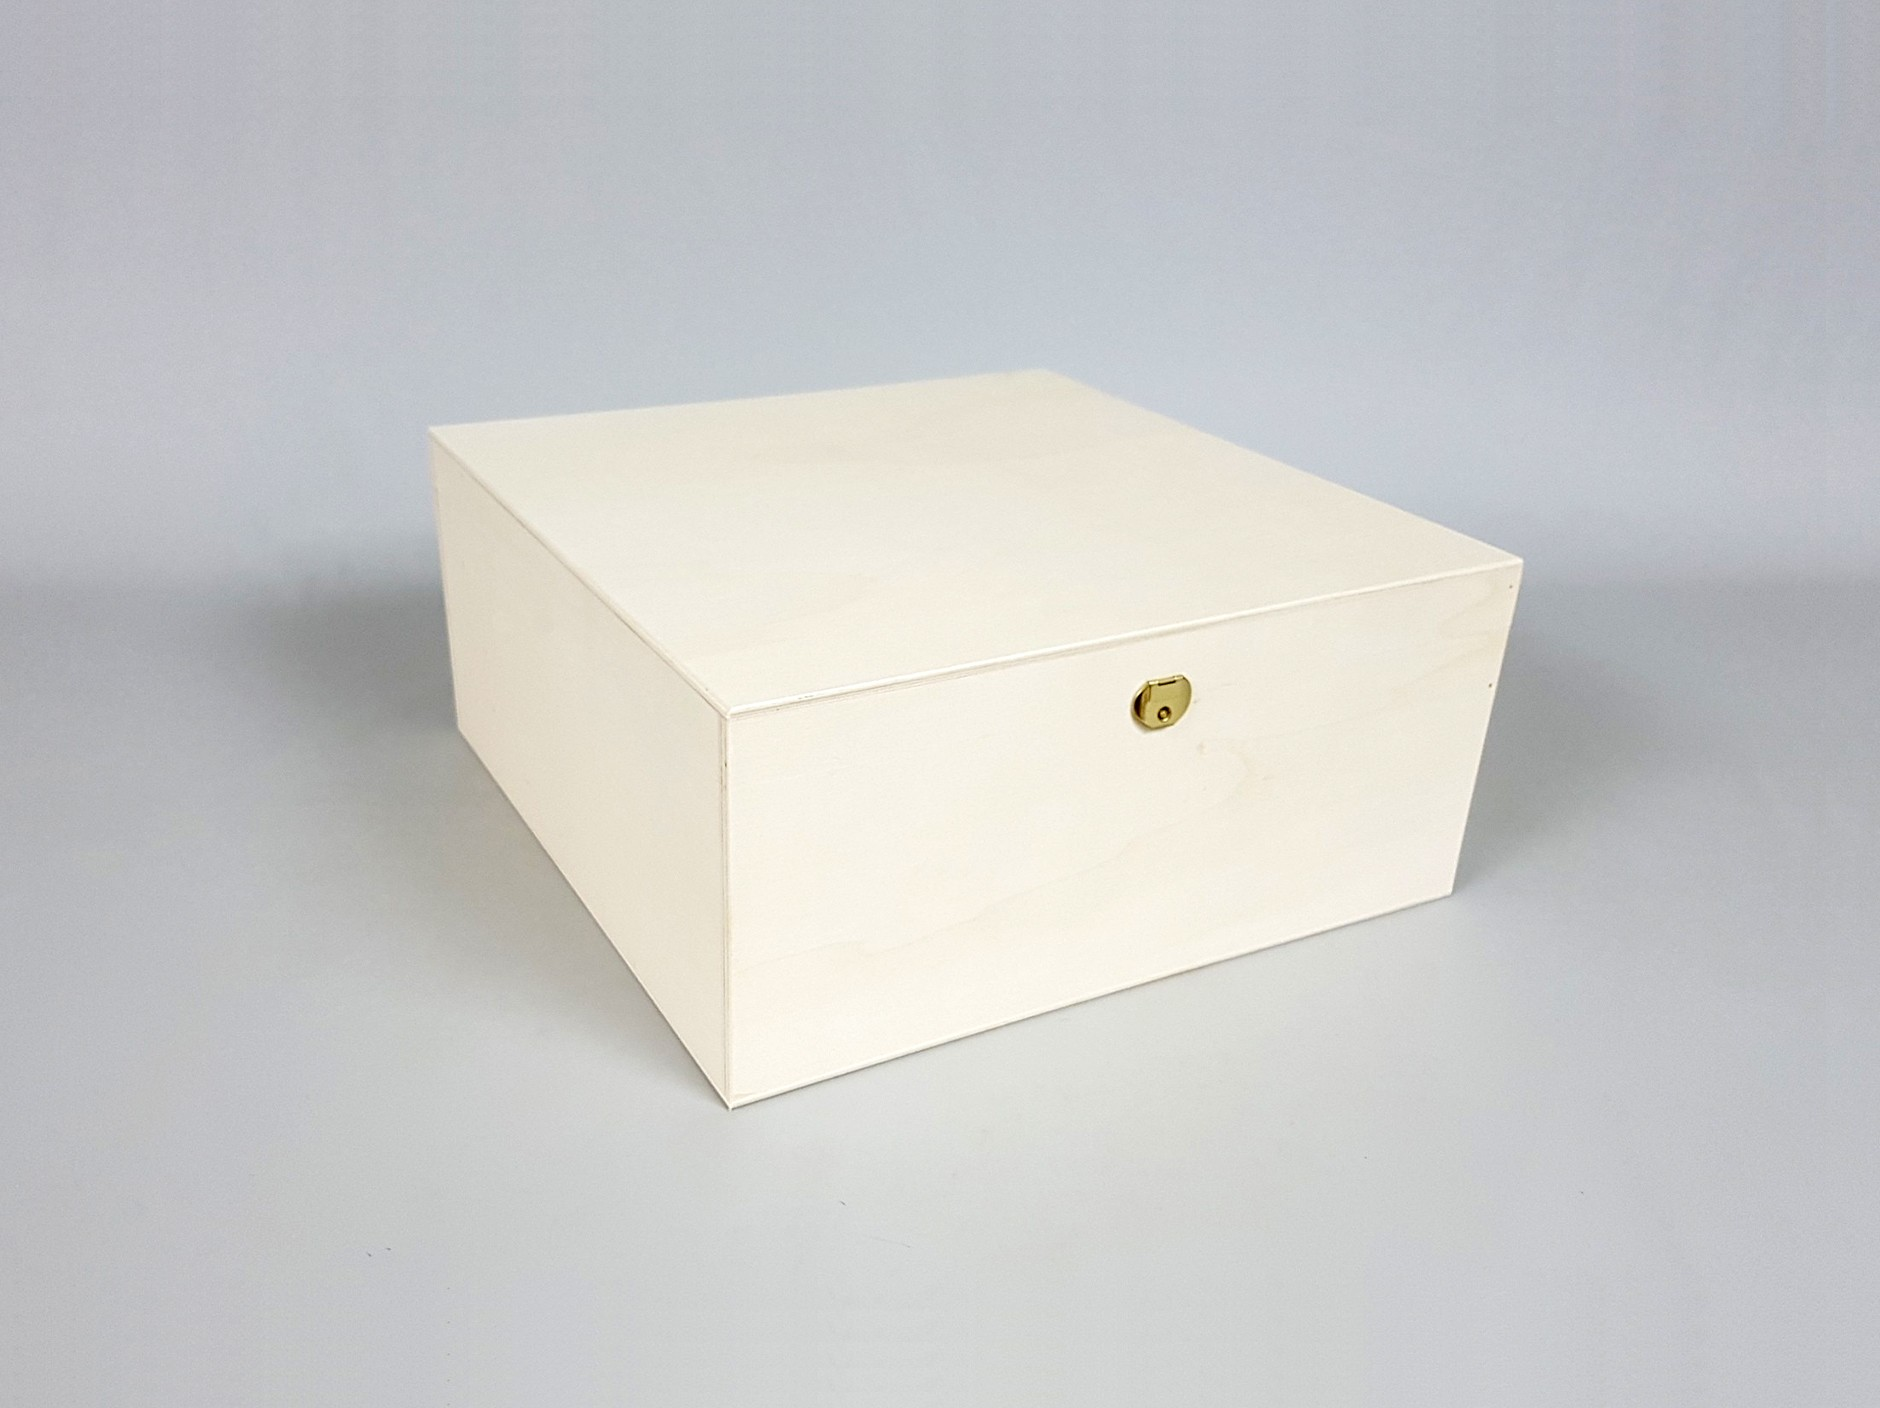 Wooden box 33x33x15 cm. with hinge and clasp Ref.P53C54